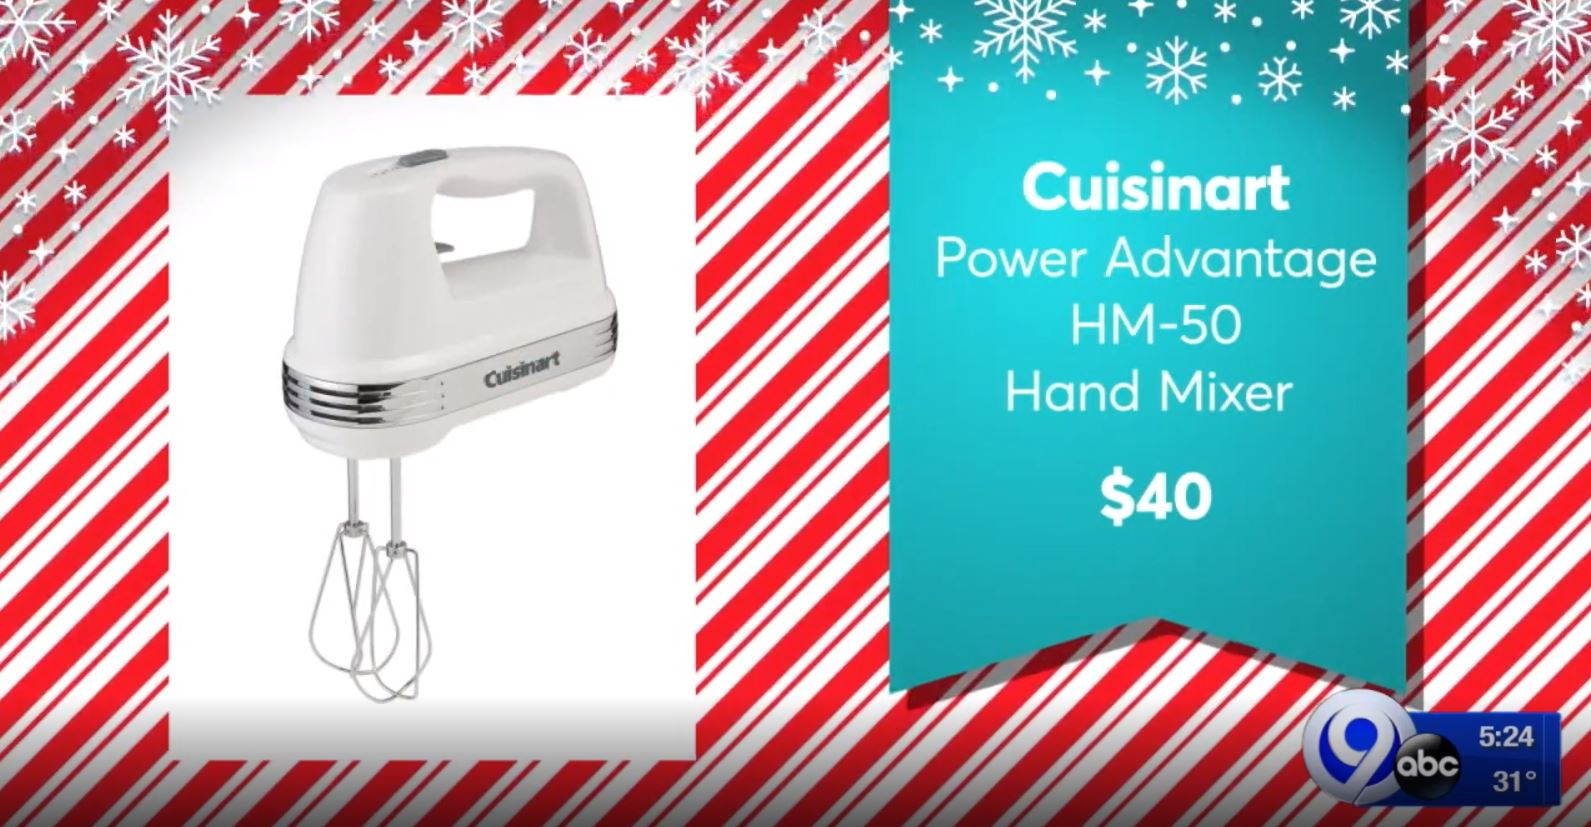 Classic kitchen gifts under $50: Consumer Reports | WSYR